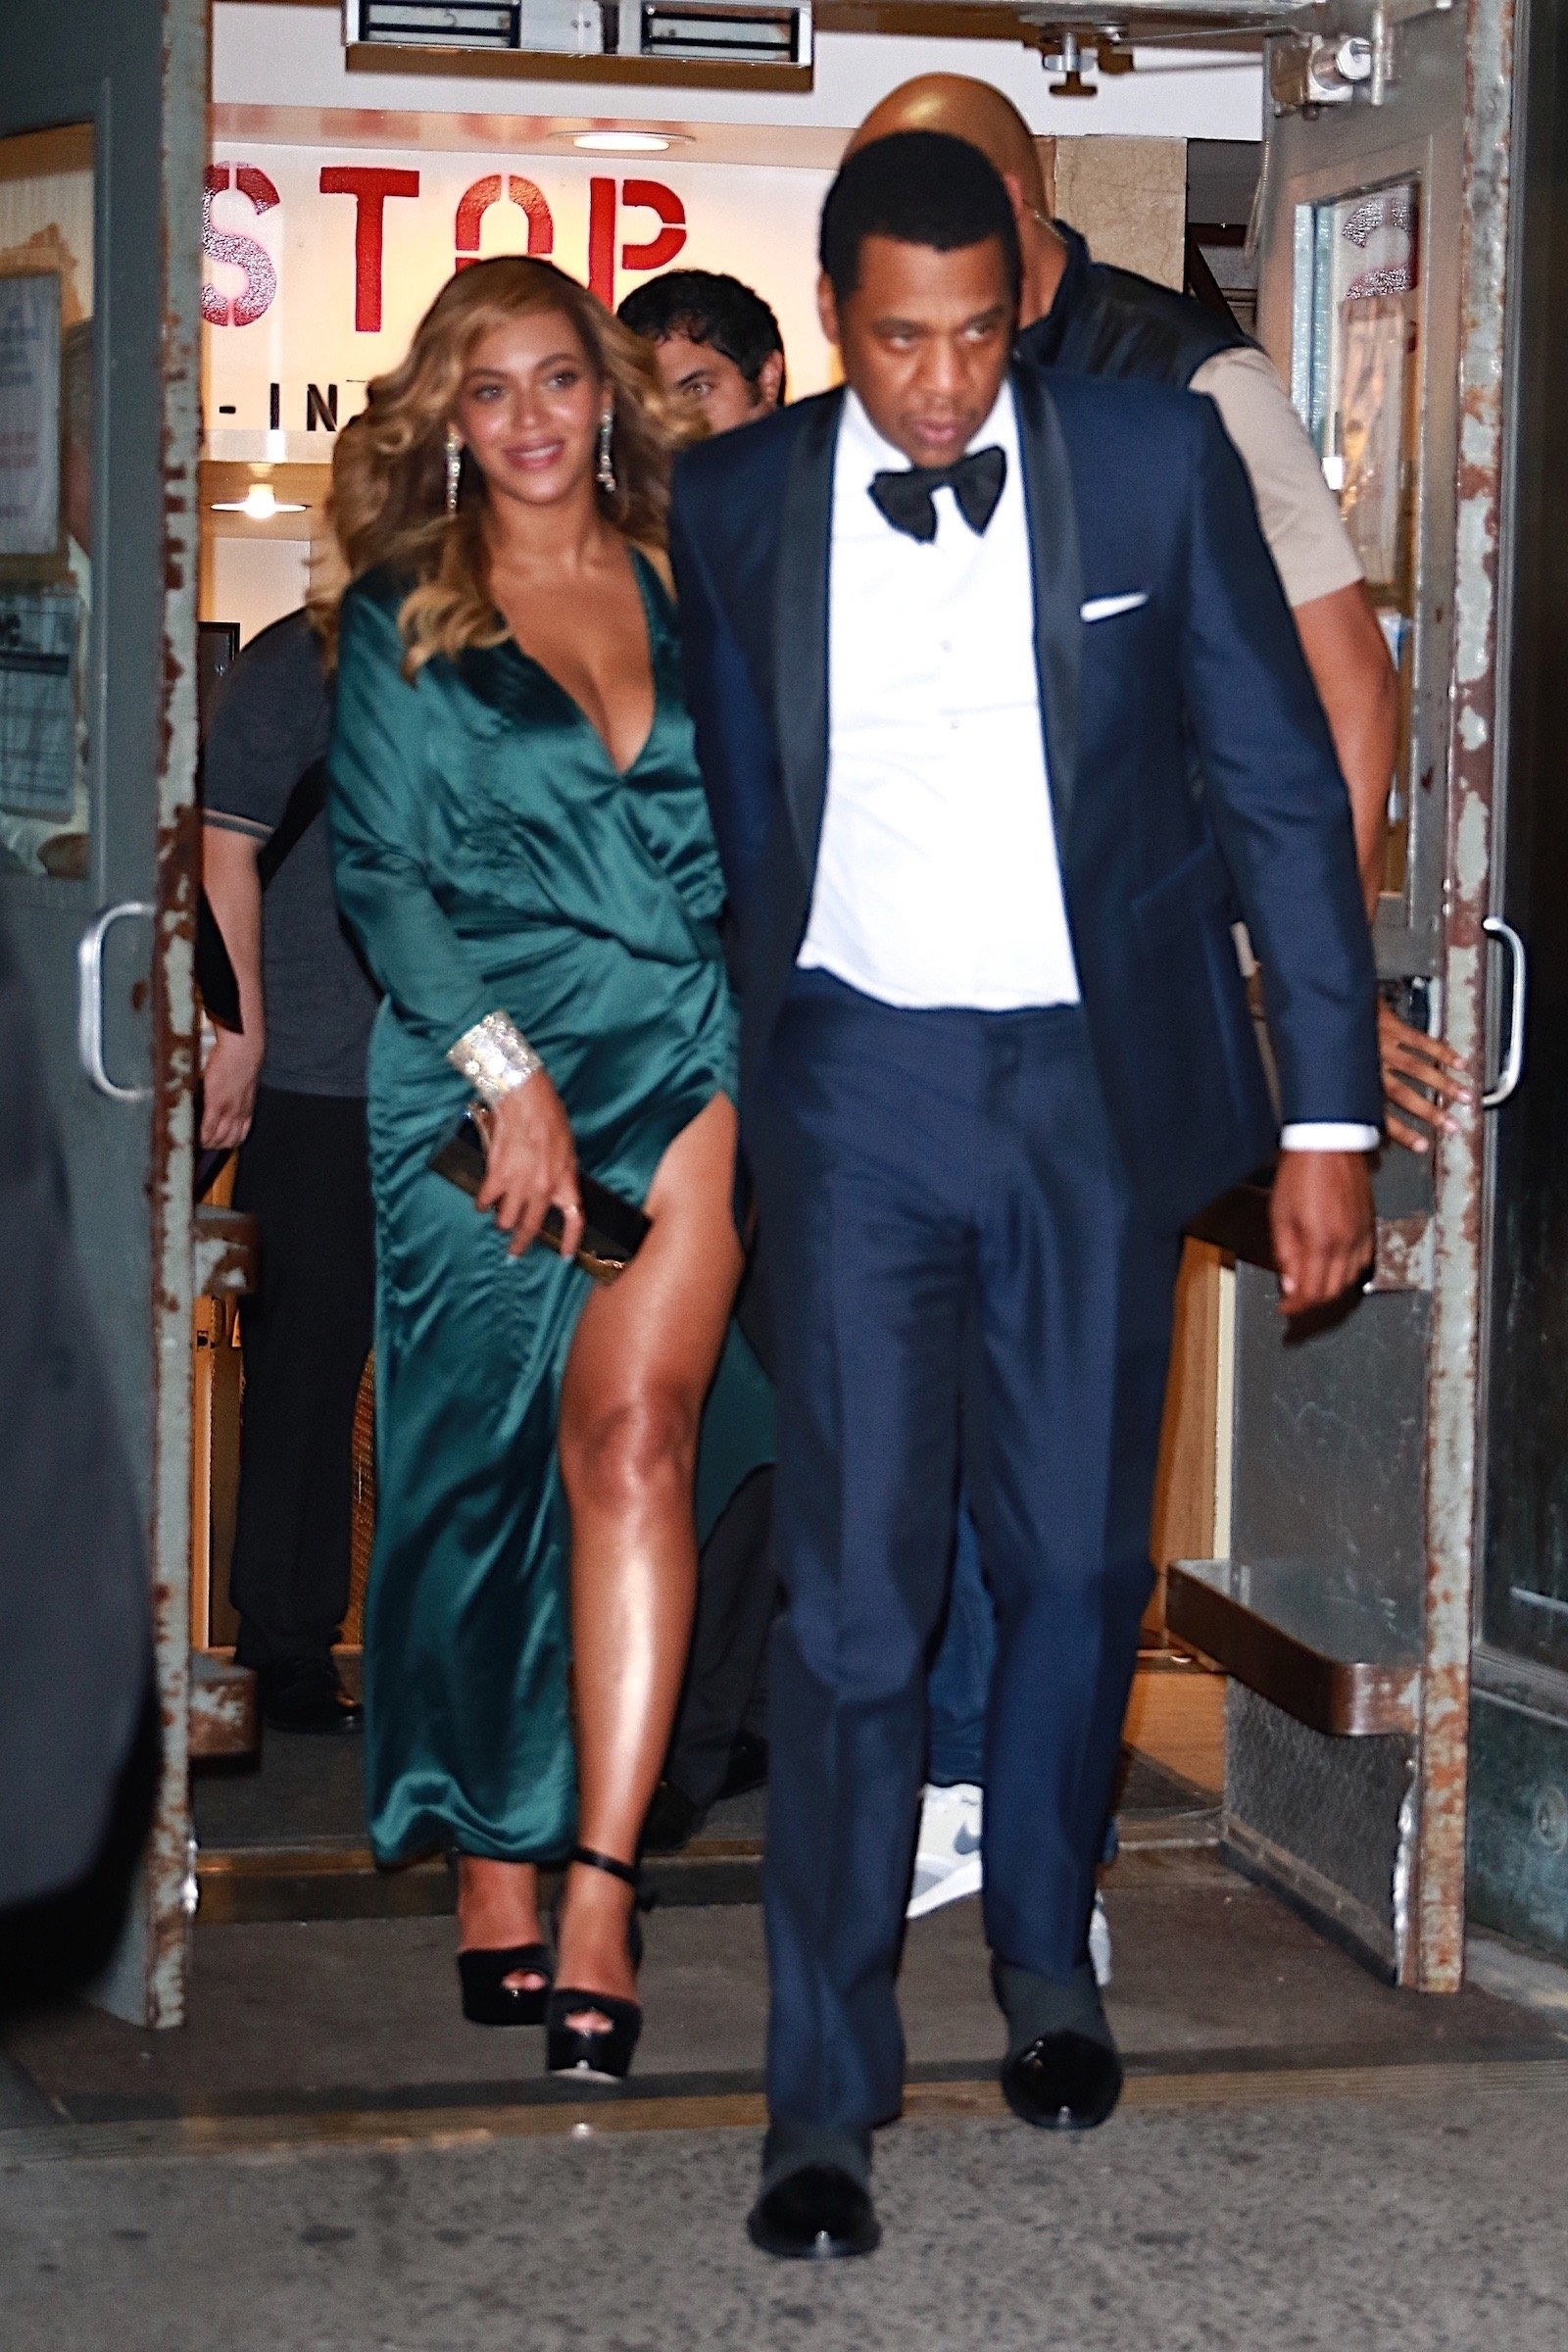 New York, NY  - Jay-Z and Beyonce leave Rihanna's 3rd Annual Diamond Ball Benefitting The Clara Lionel Foundation at Cipriani Wall Street.  Pictured: Beyonce, Jay-Z  BACKGRID USA 14 SEPTEMBER 2017, Image: 349416283, License: Rights-managed, Restrictions: , Model Release: no, Credit line: Profimedia, AKM-GSI